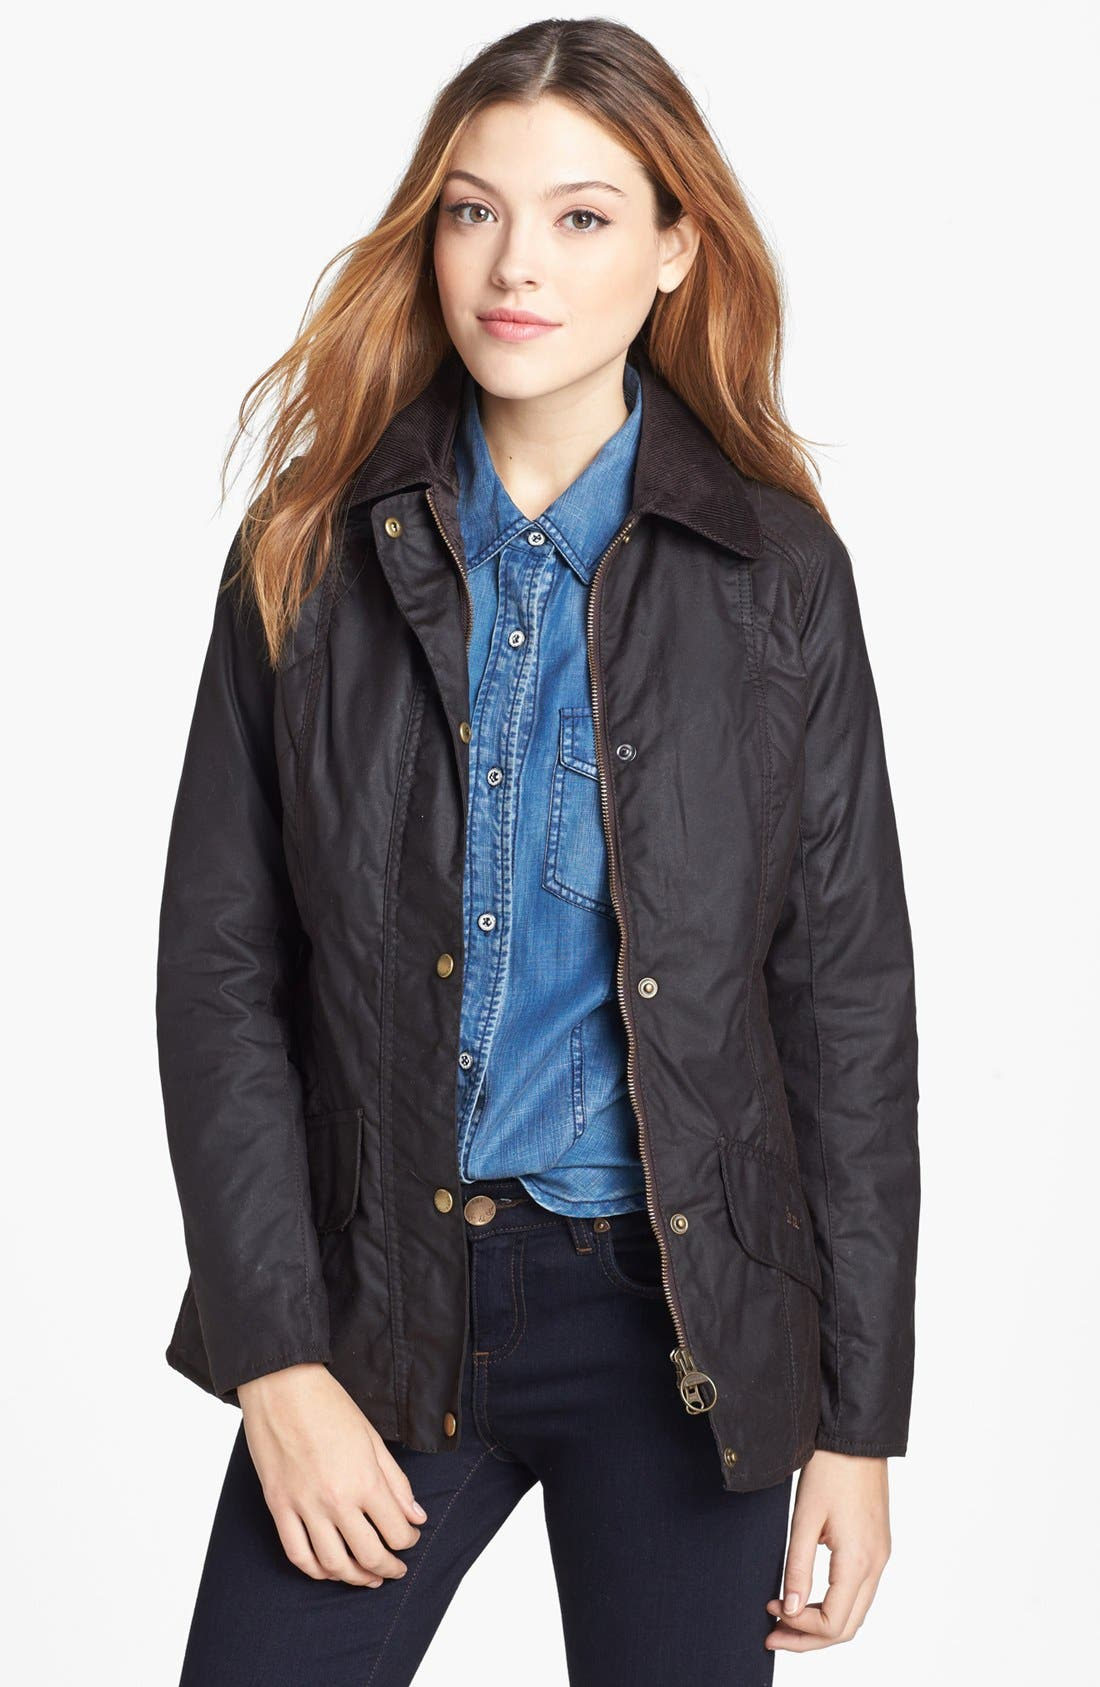 Main Image - Barbour 'Sapey' Waxed Cotton Jacket